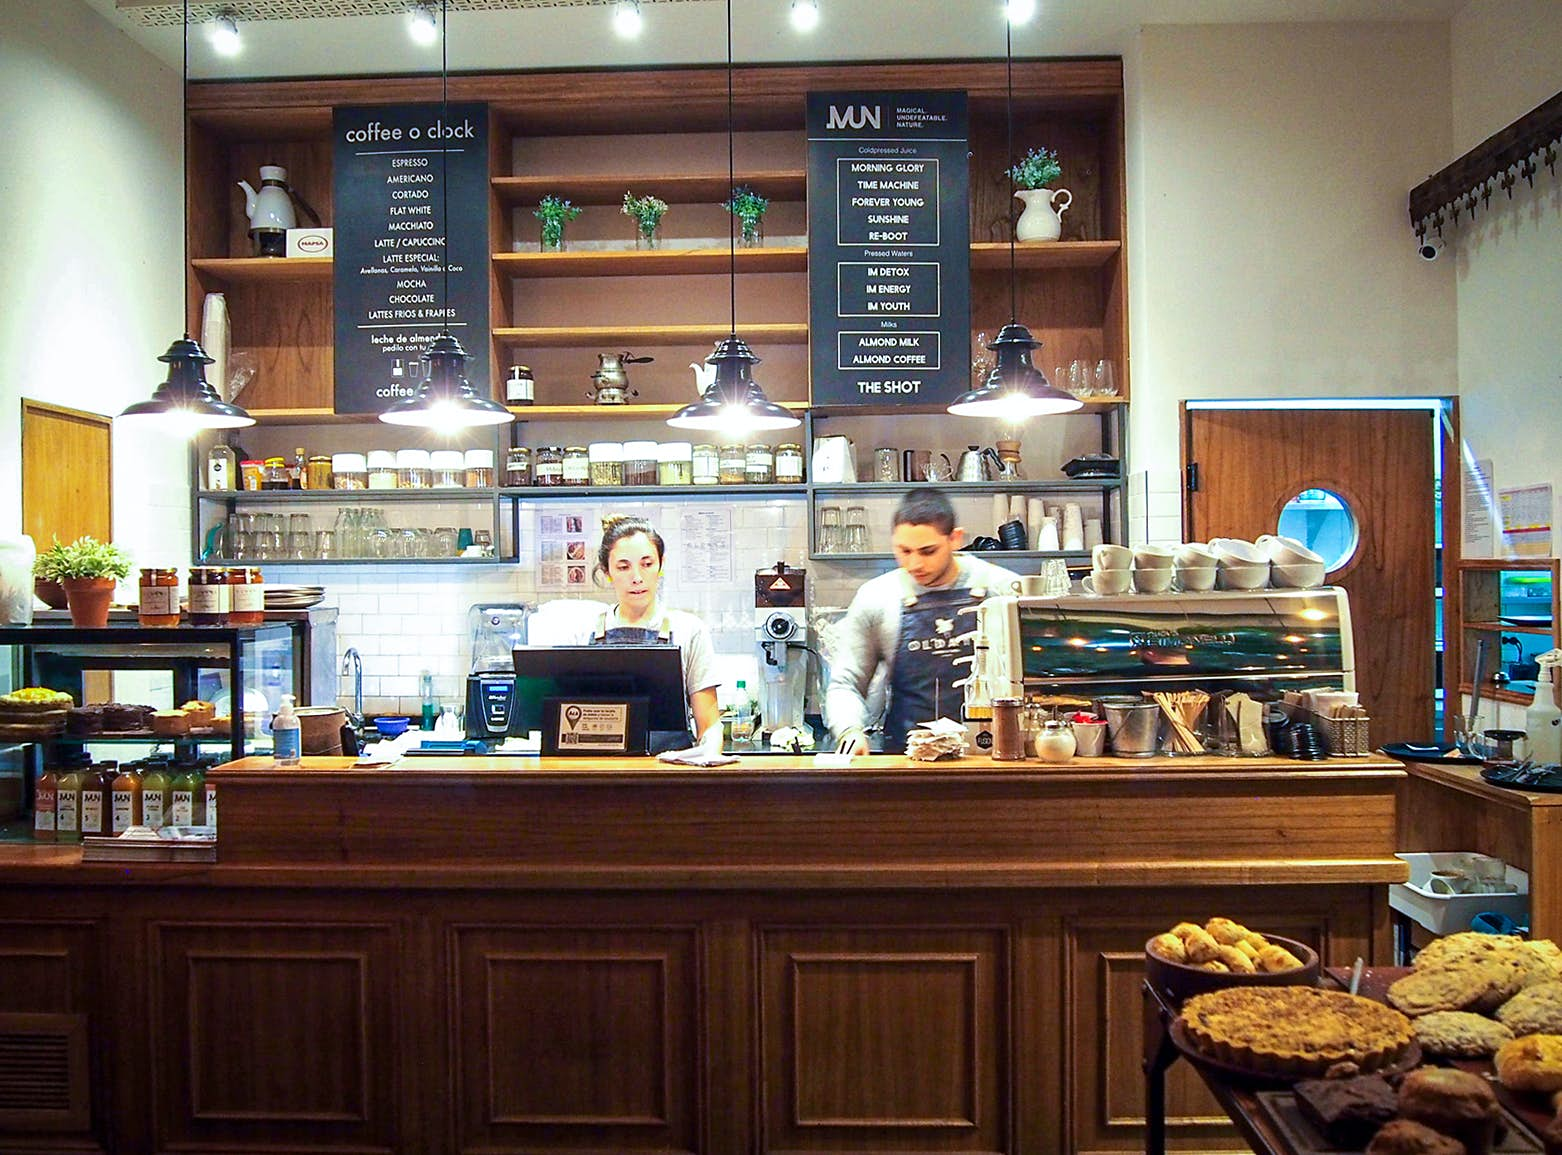 Two people work behind a wooden counter with pies and beverages displayed around them